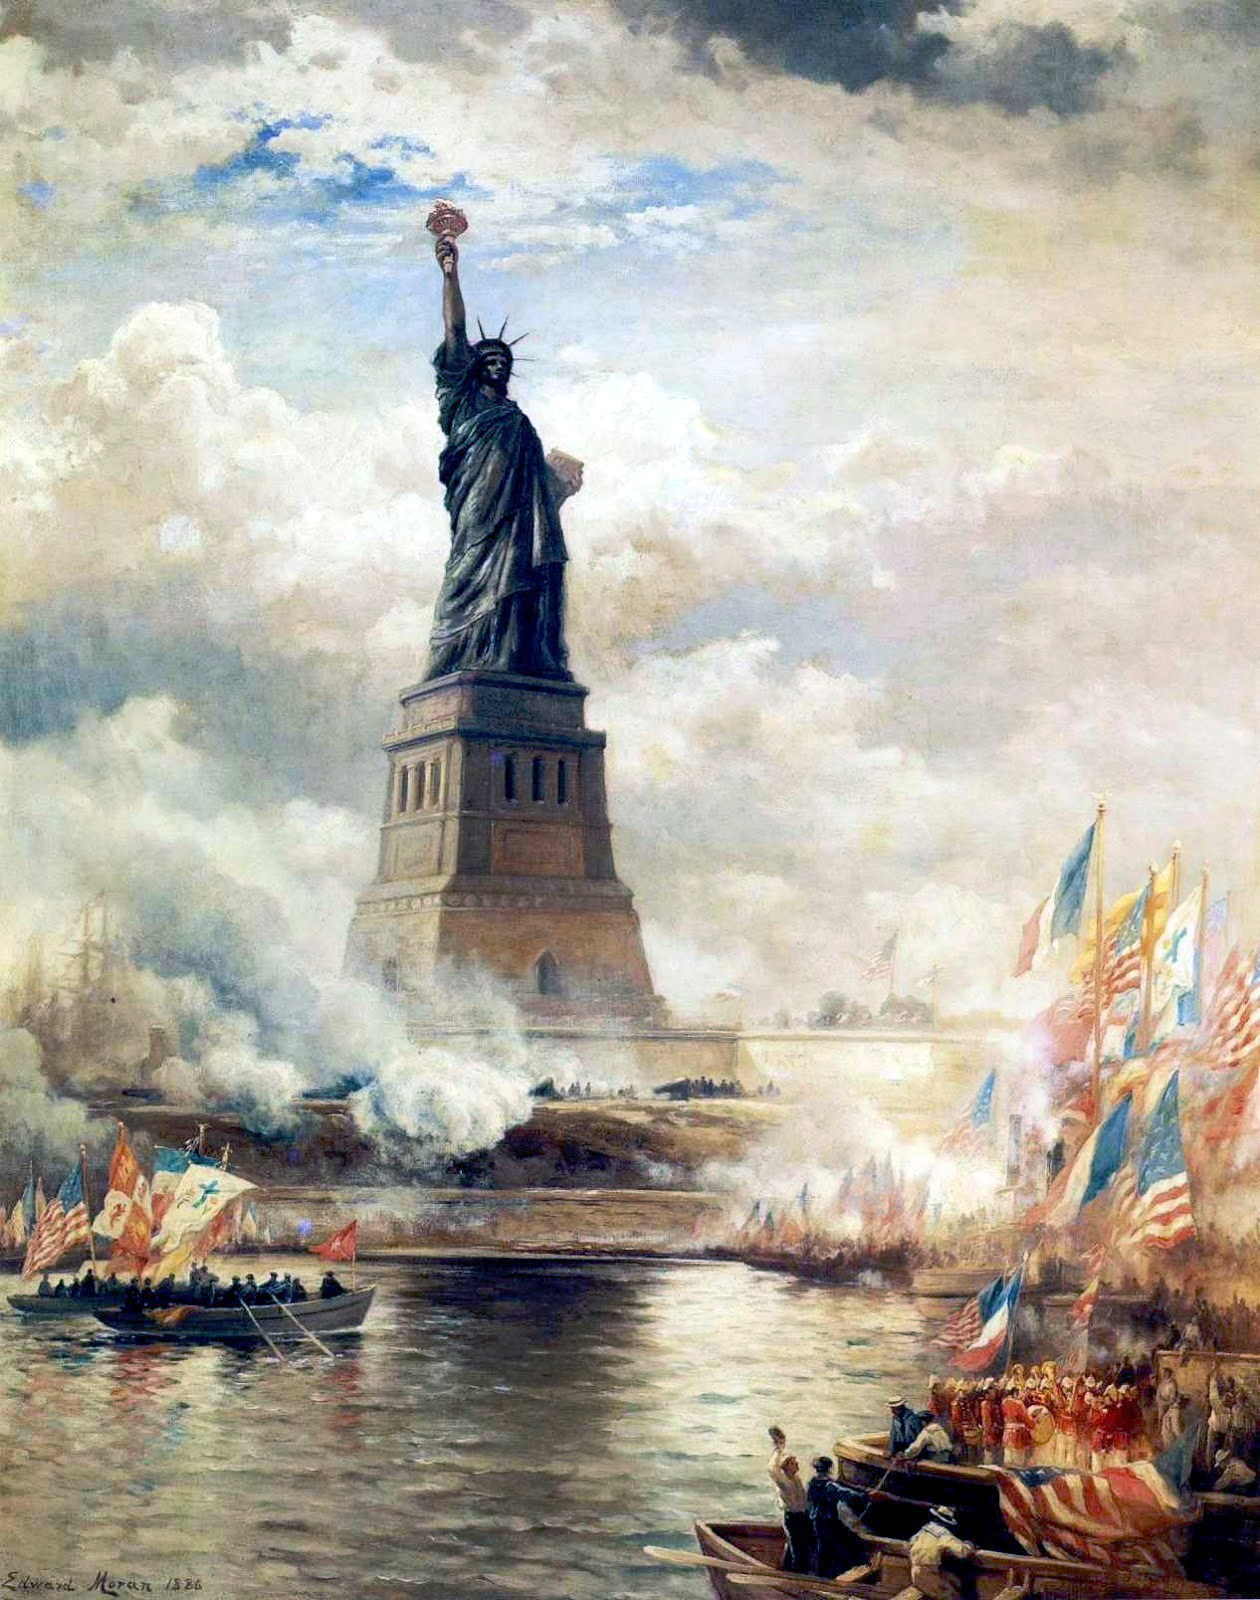 Statue of Liberty unveiled by Edward Moran, 1886